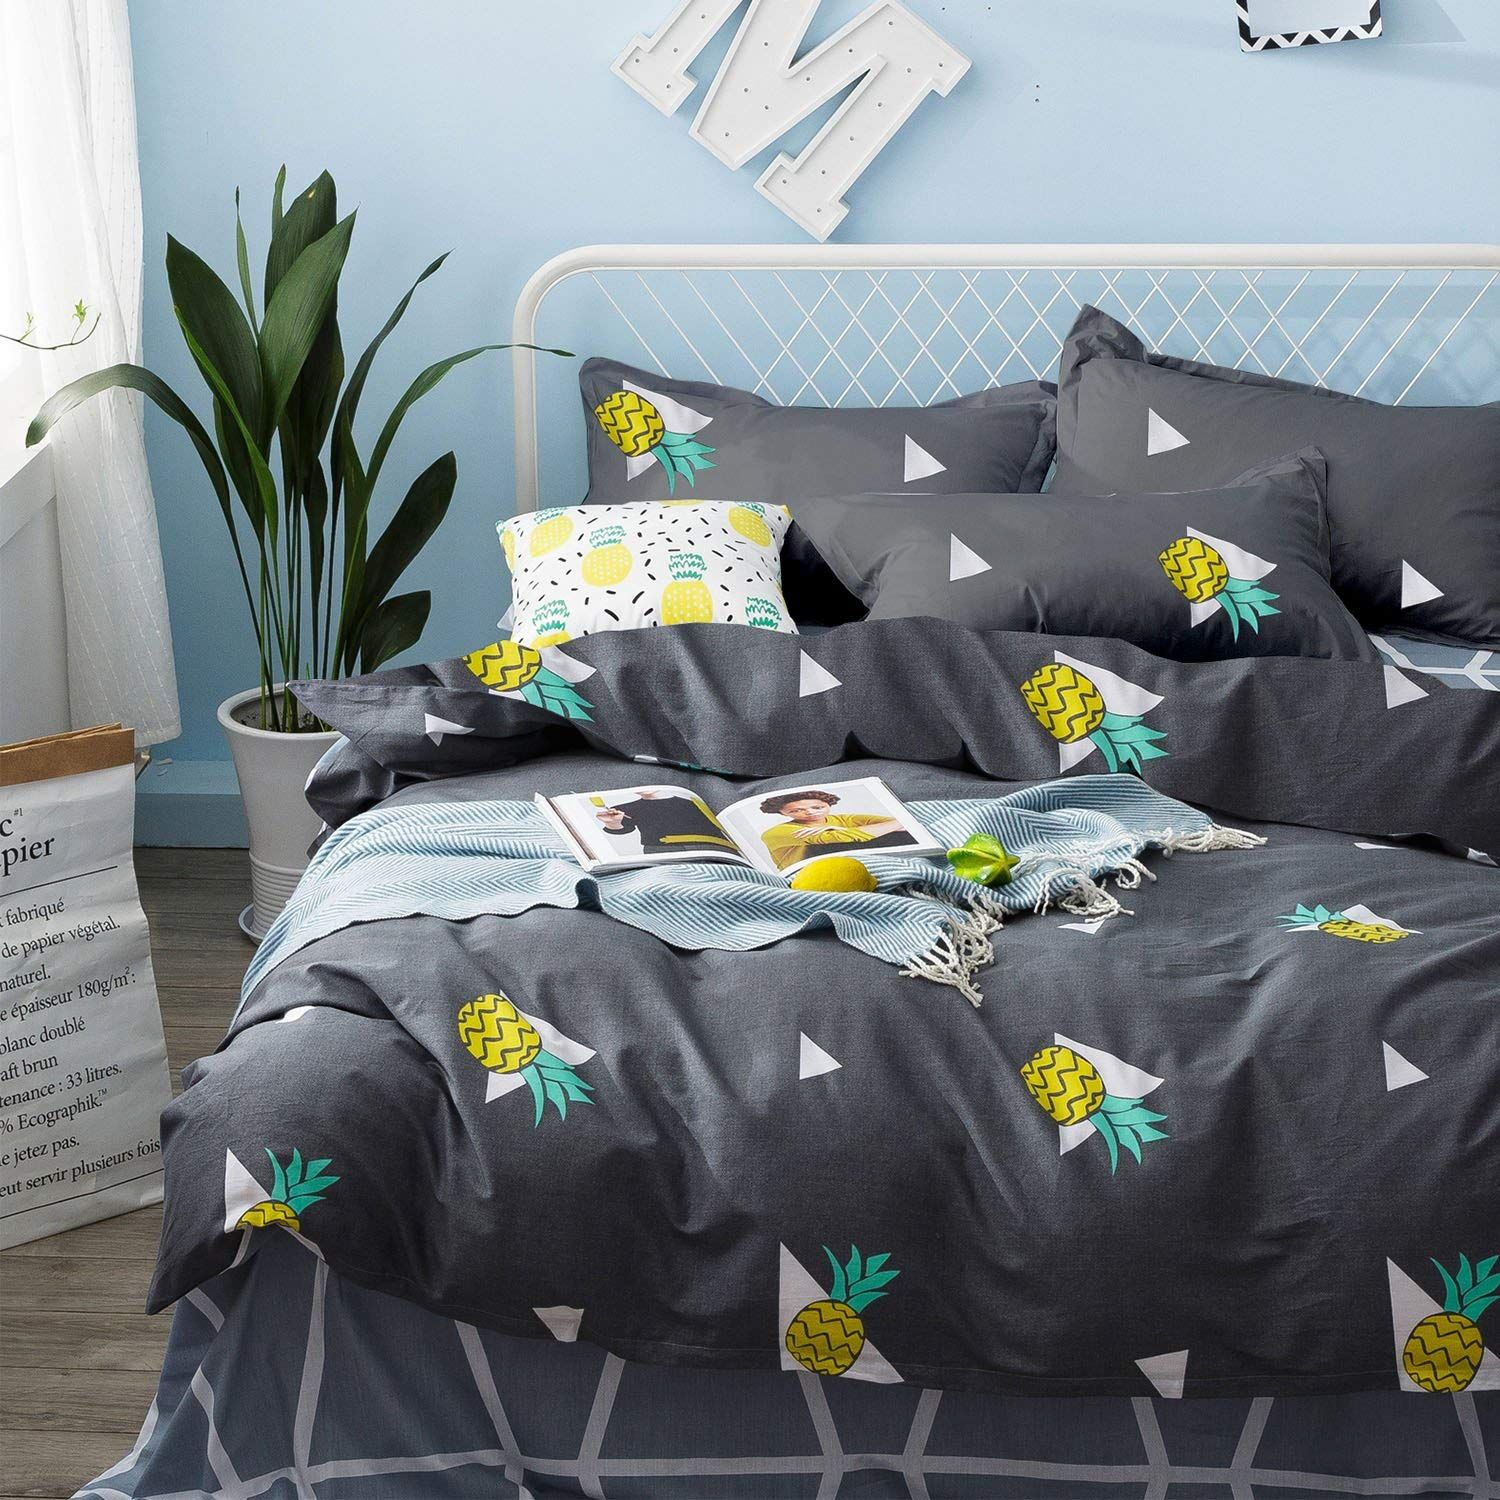 Pineapple Duvet Cover Set 100 Soft Cotton Bedding Yellow